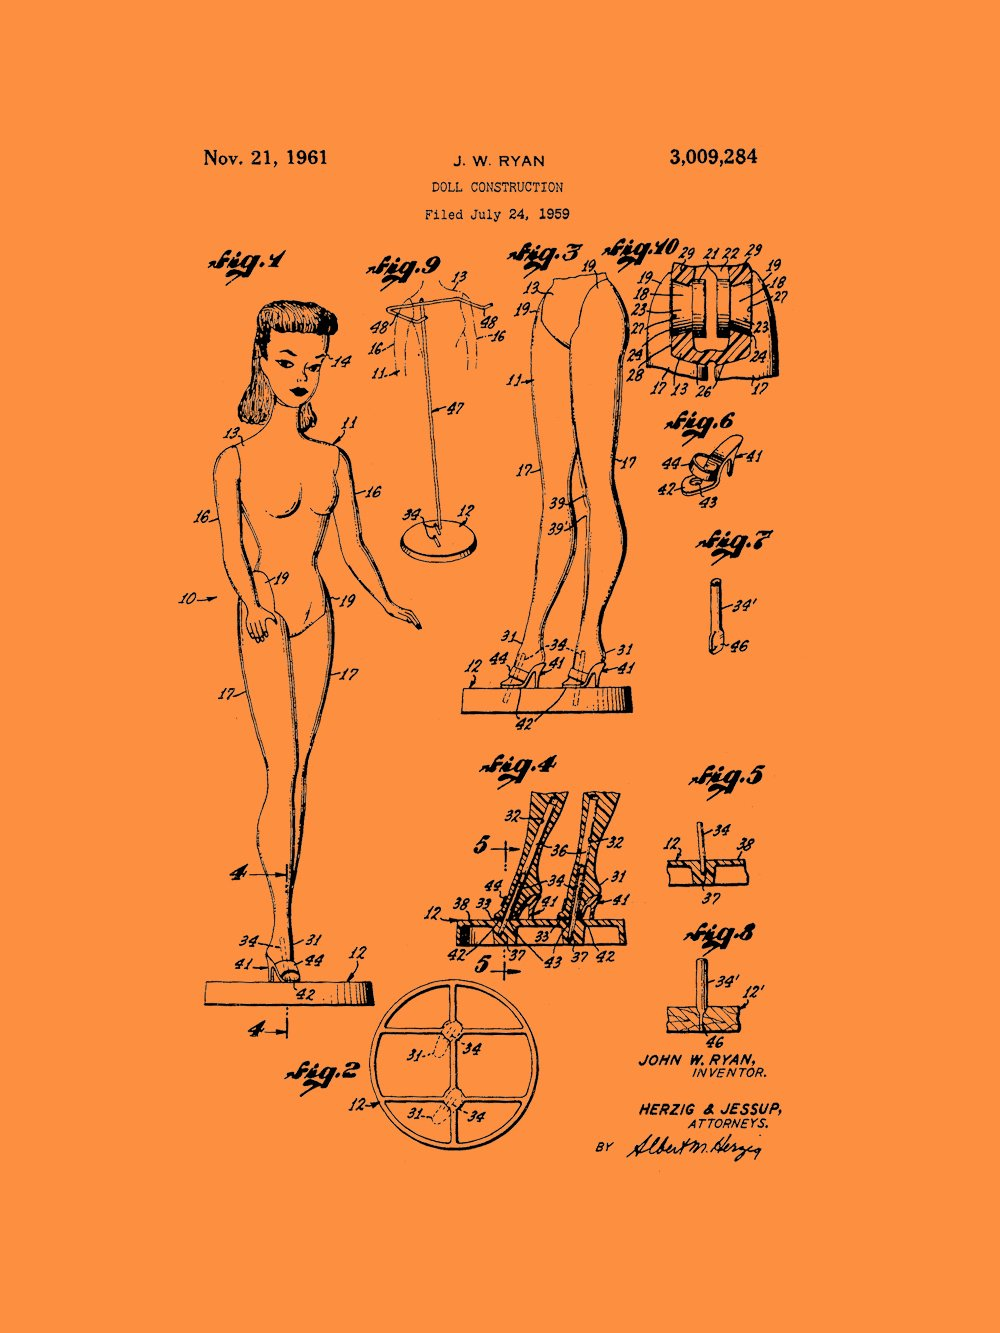 Framable Patent Art PAPSP57VO The Original Ready to Frame D/écor Barbie Doll Classic Retro Girls 18in by 24in Patent Art Poster Print Vintage Orange